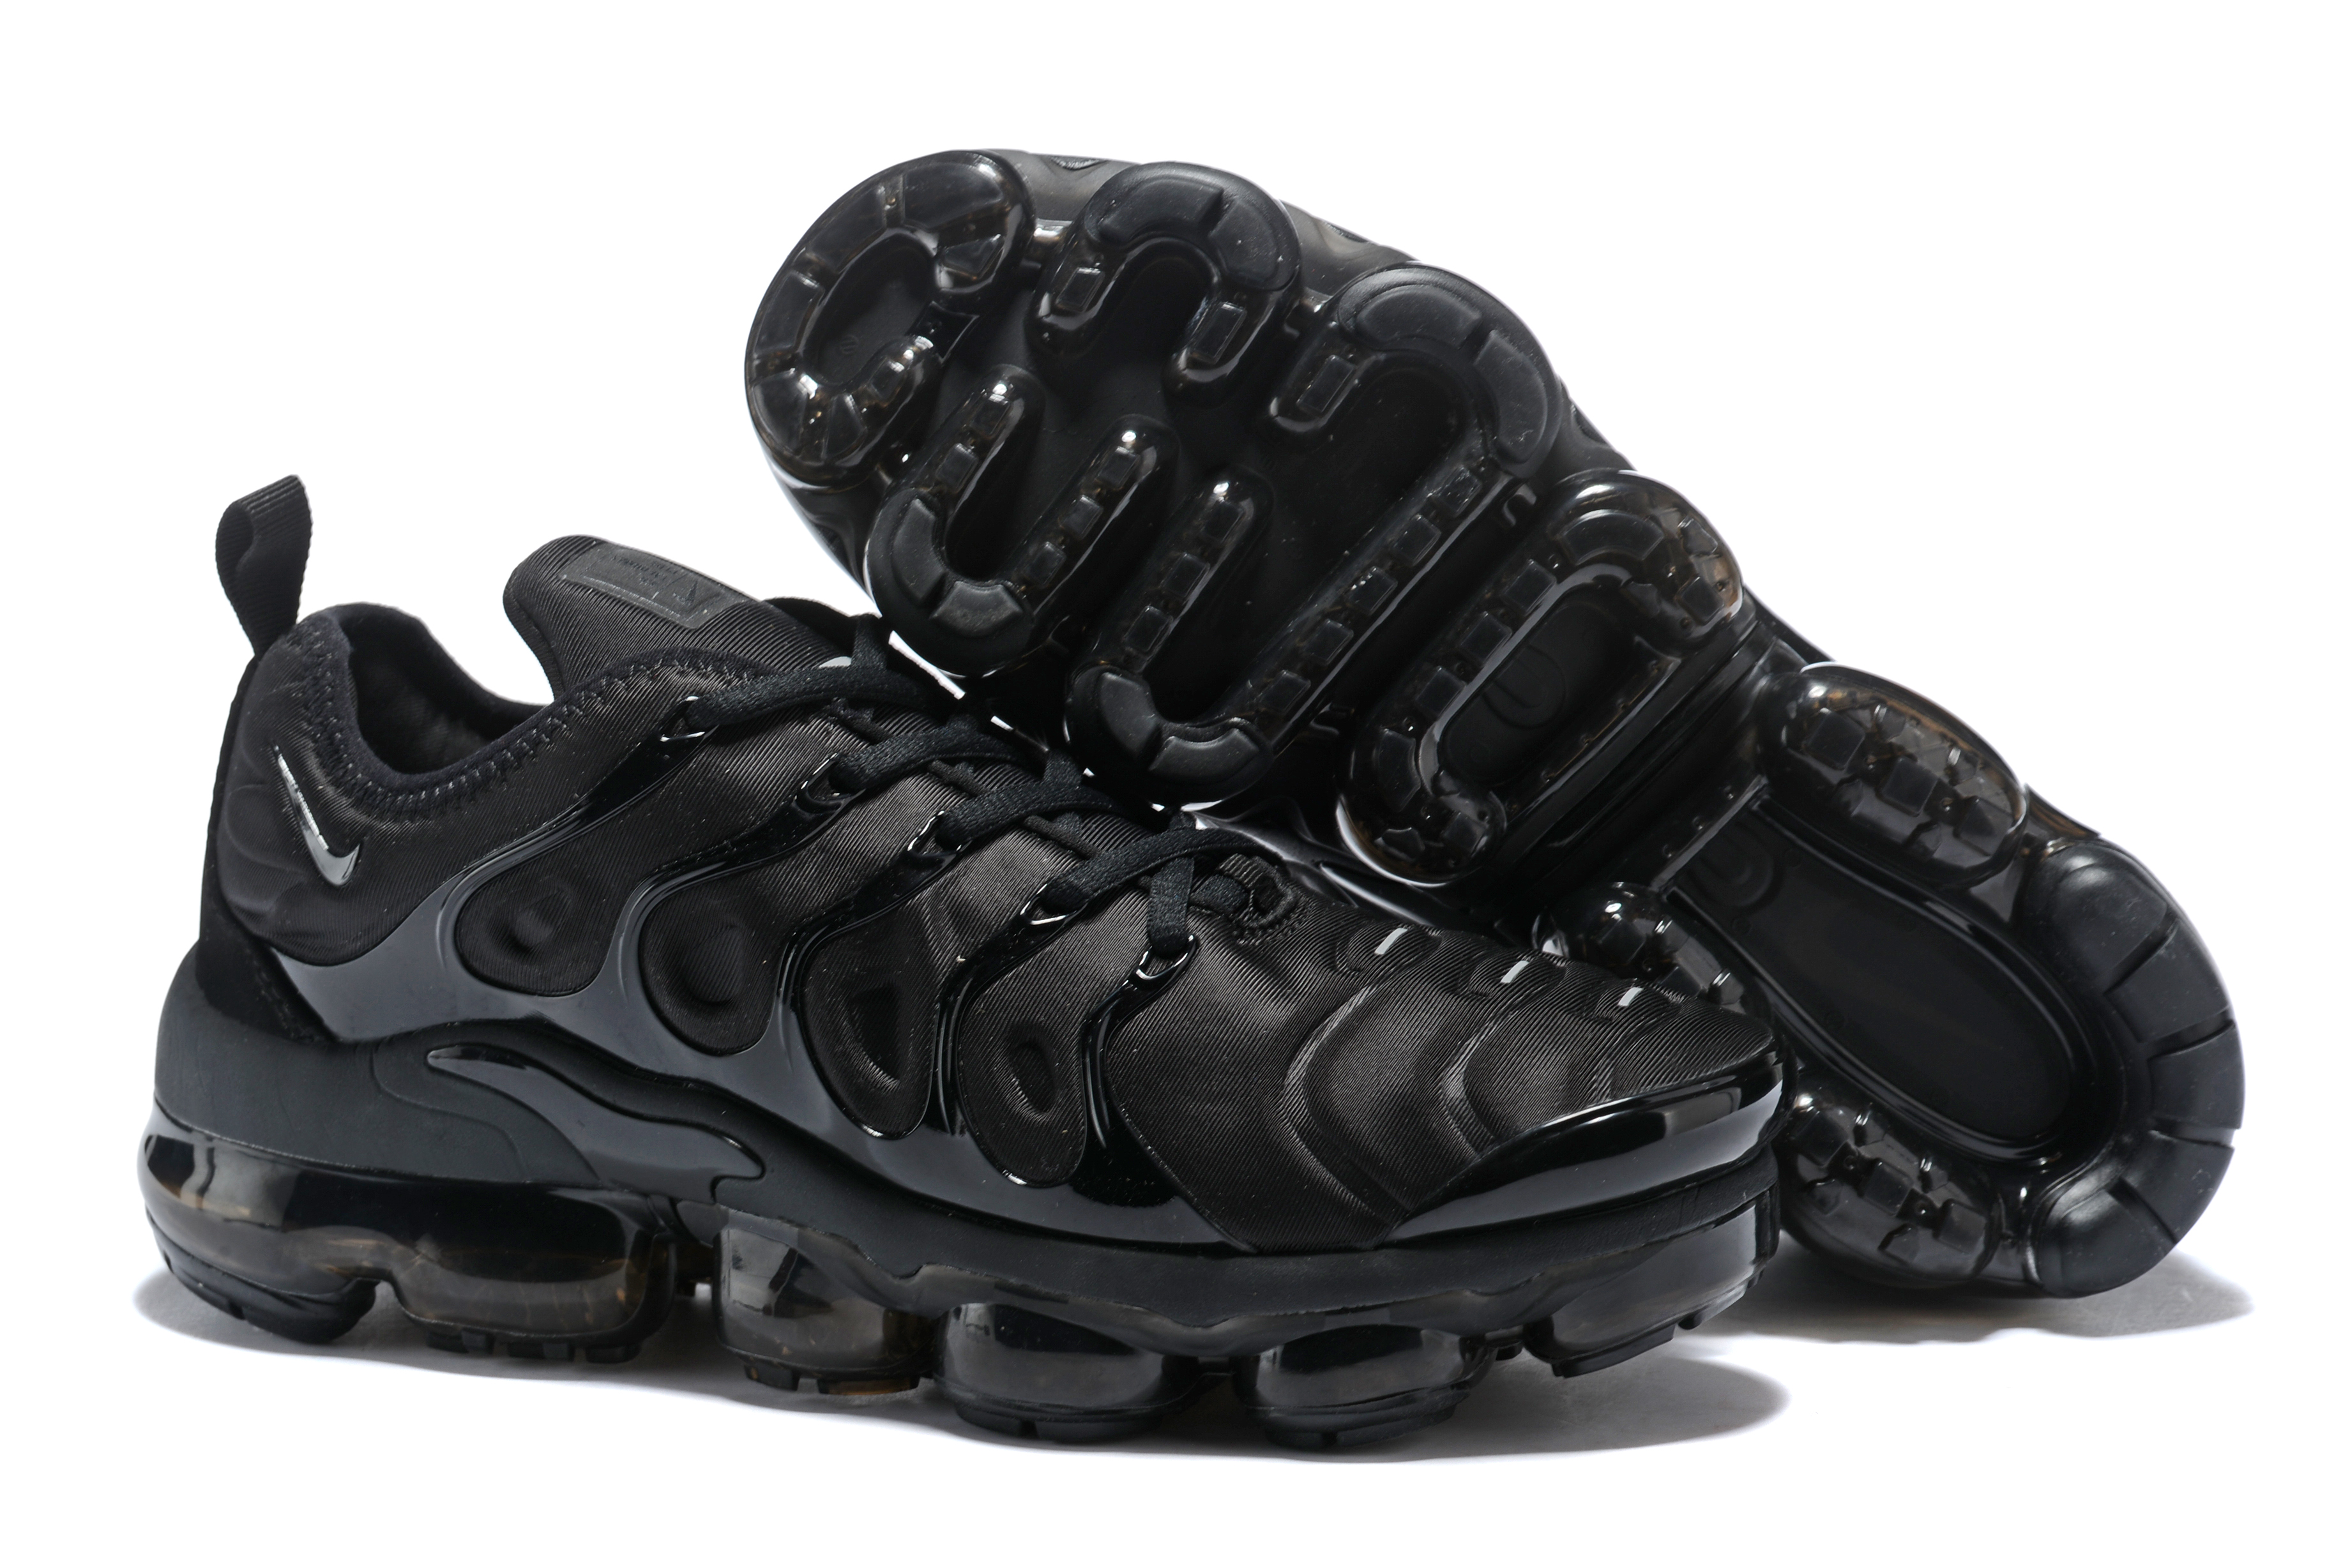 2018 Nike Air Max TN Plus All Black Lover Shoes